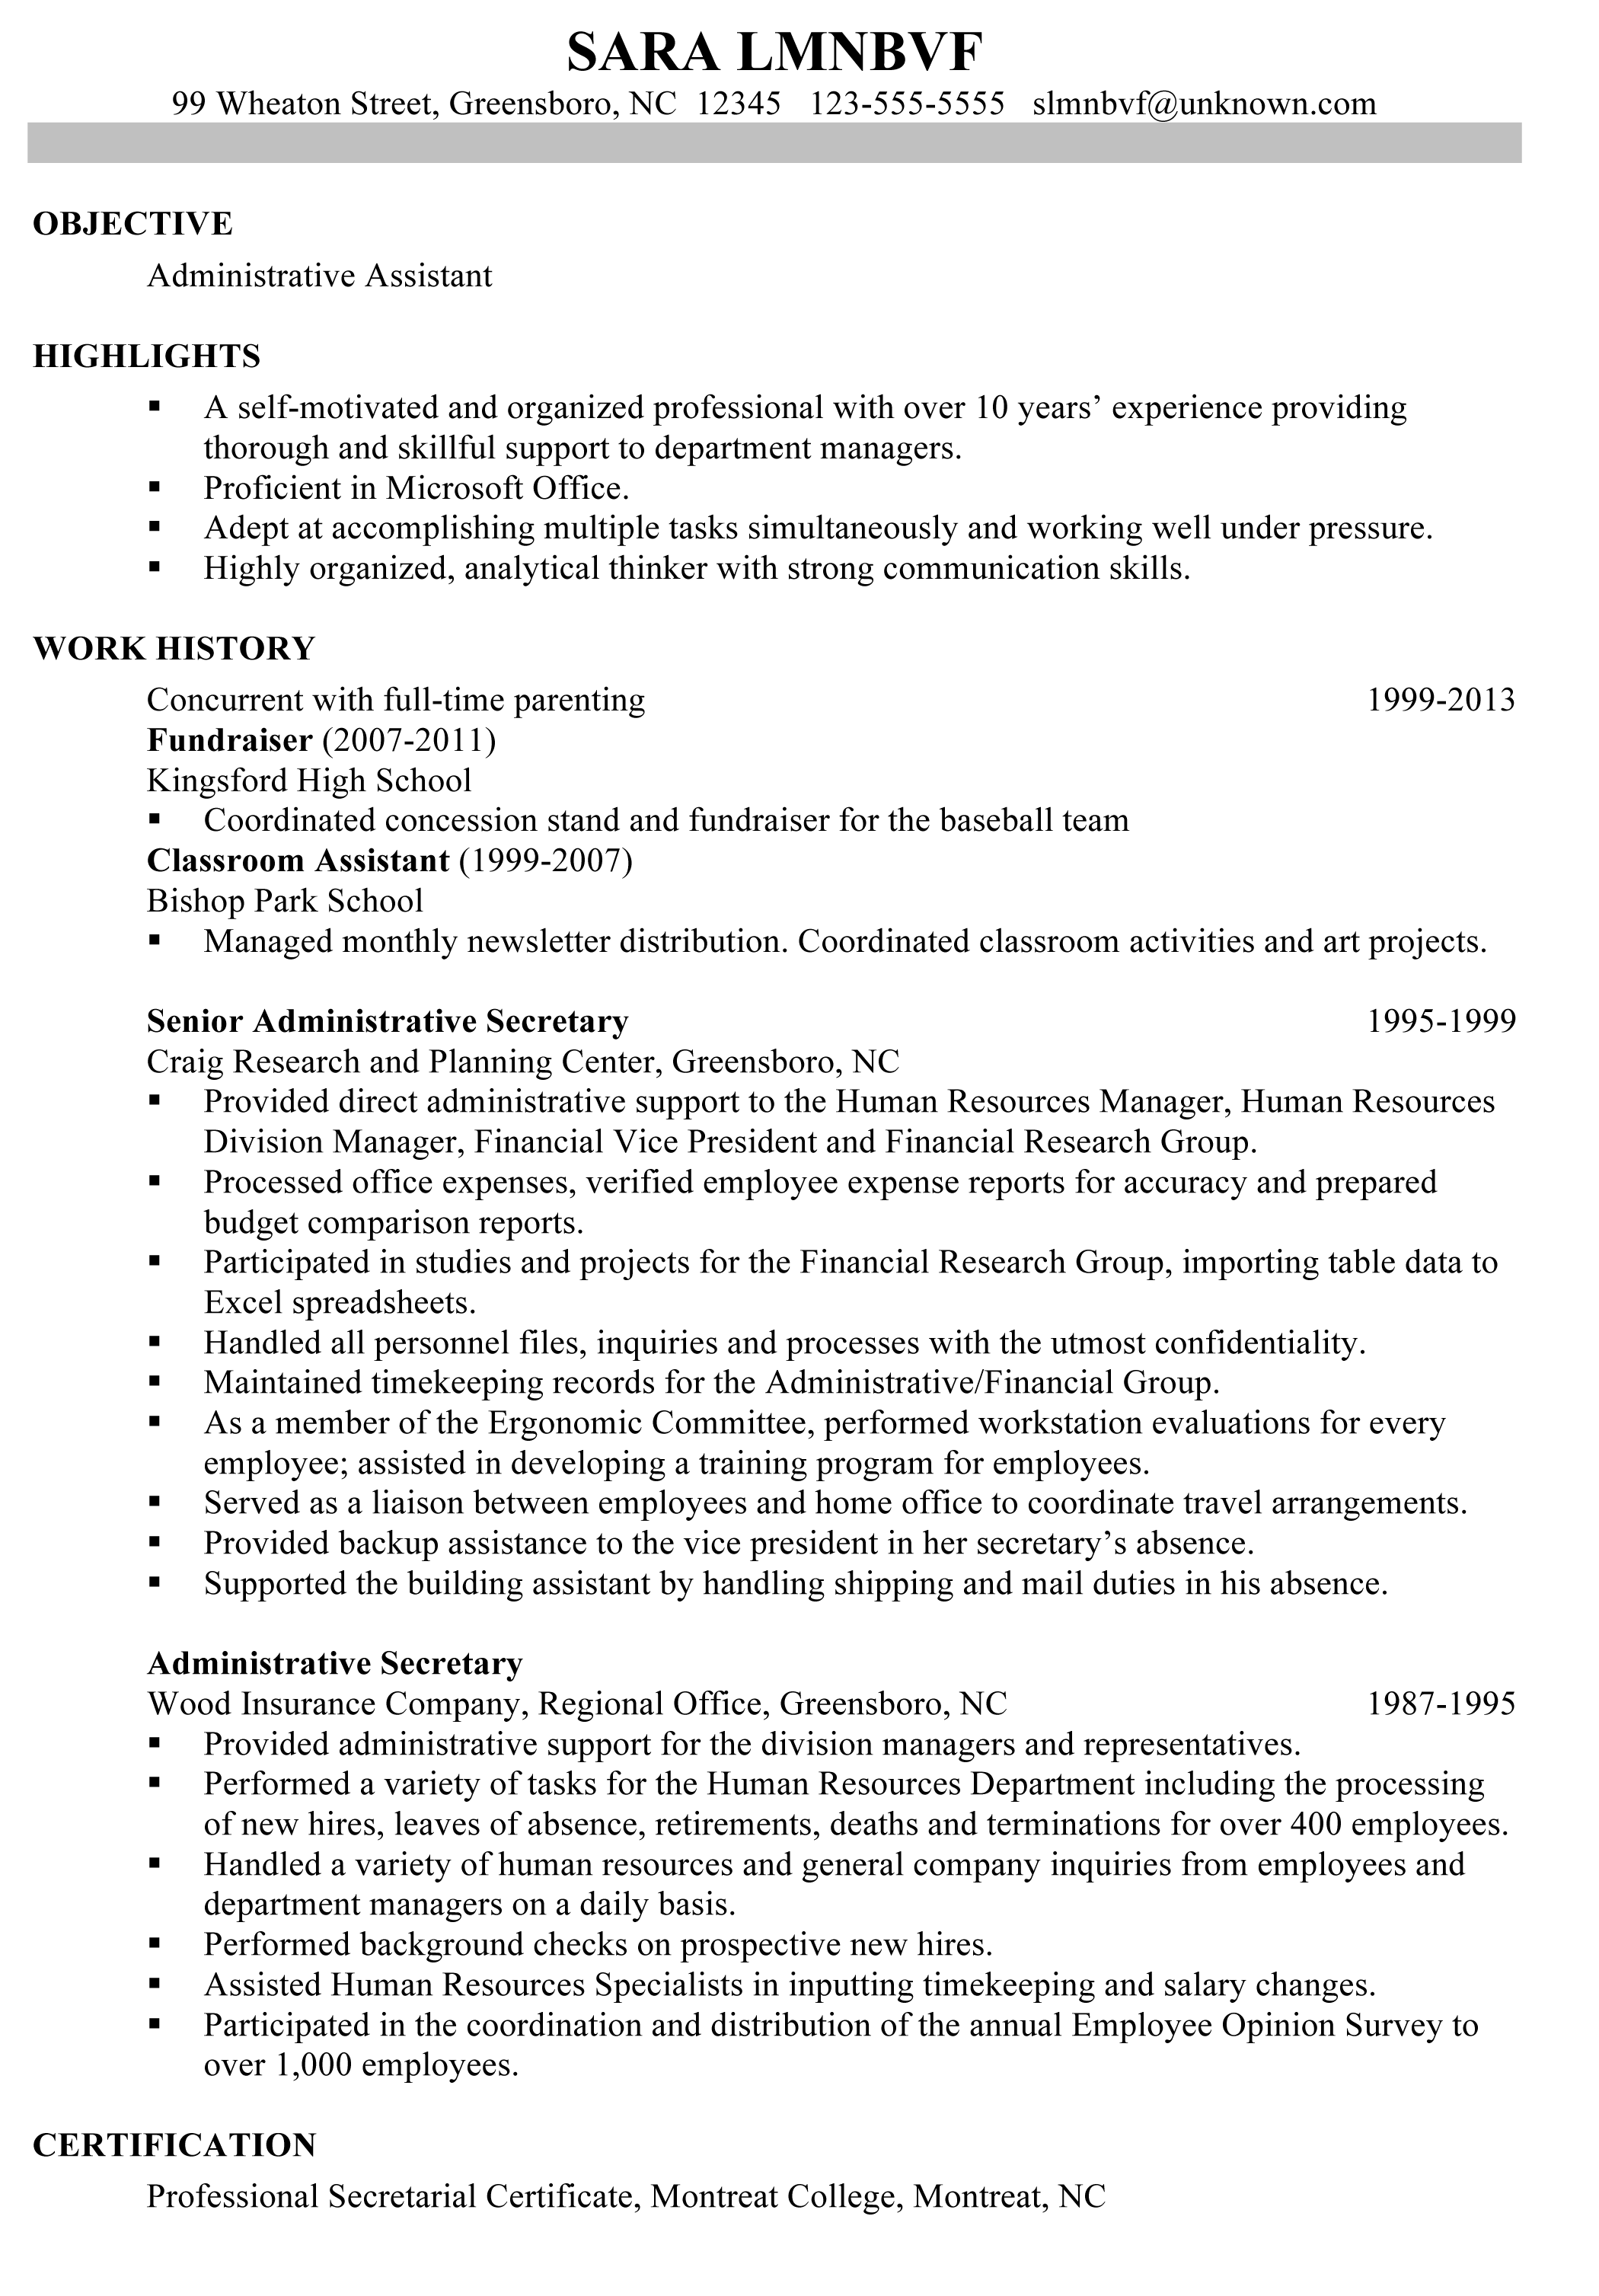 Administrative Assistant Resume Template Great Administrative Assistant Resumes  Using Professional Resume